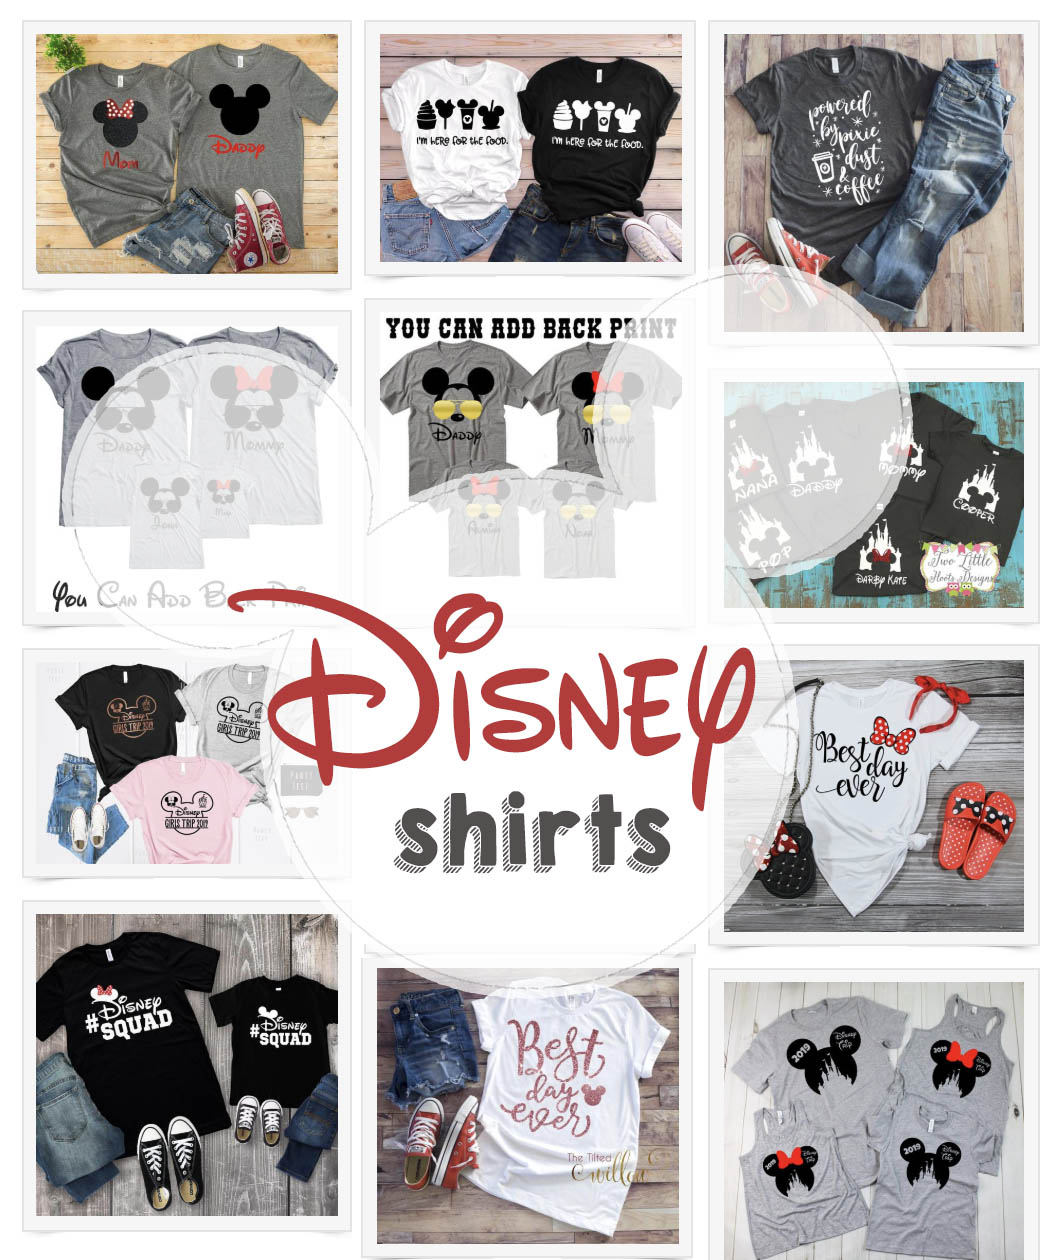 762b65a96b2 Disney Family Shirts - Awesome Matching Disney Vacation Tees We Love